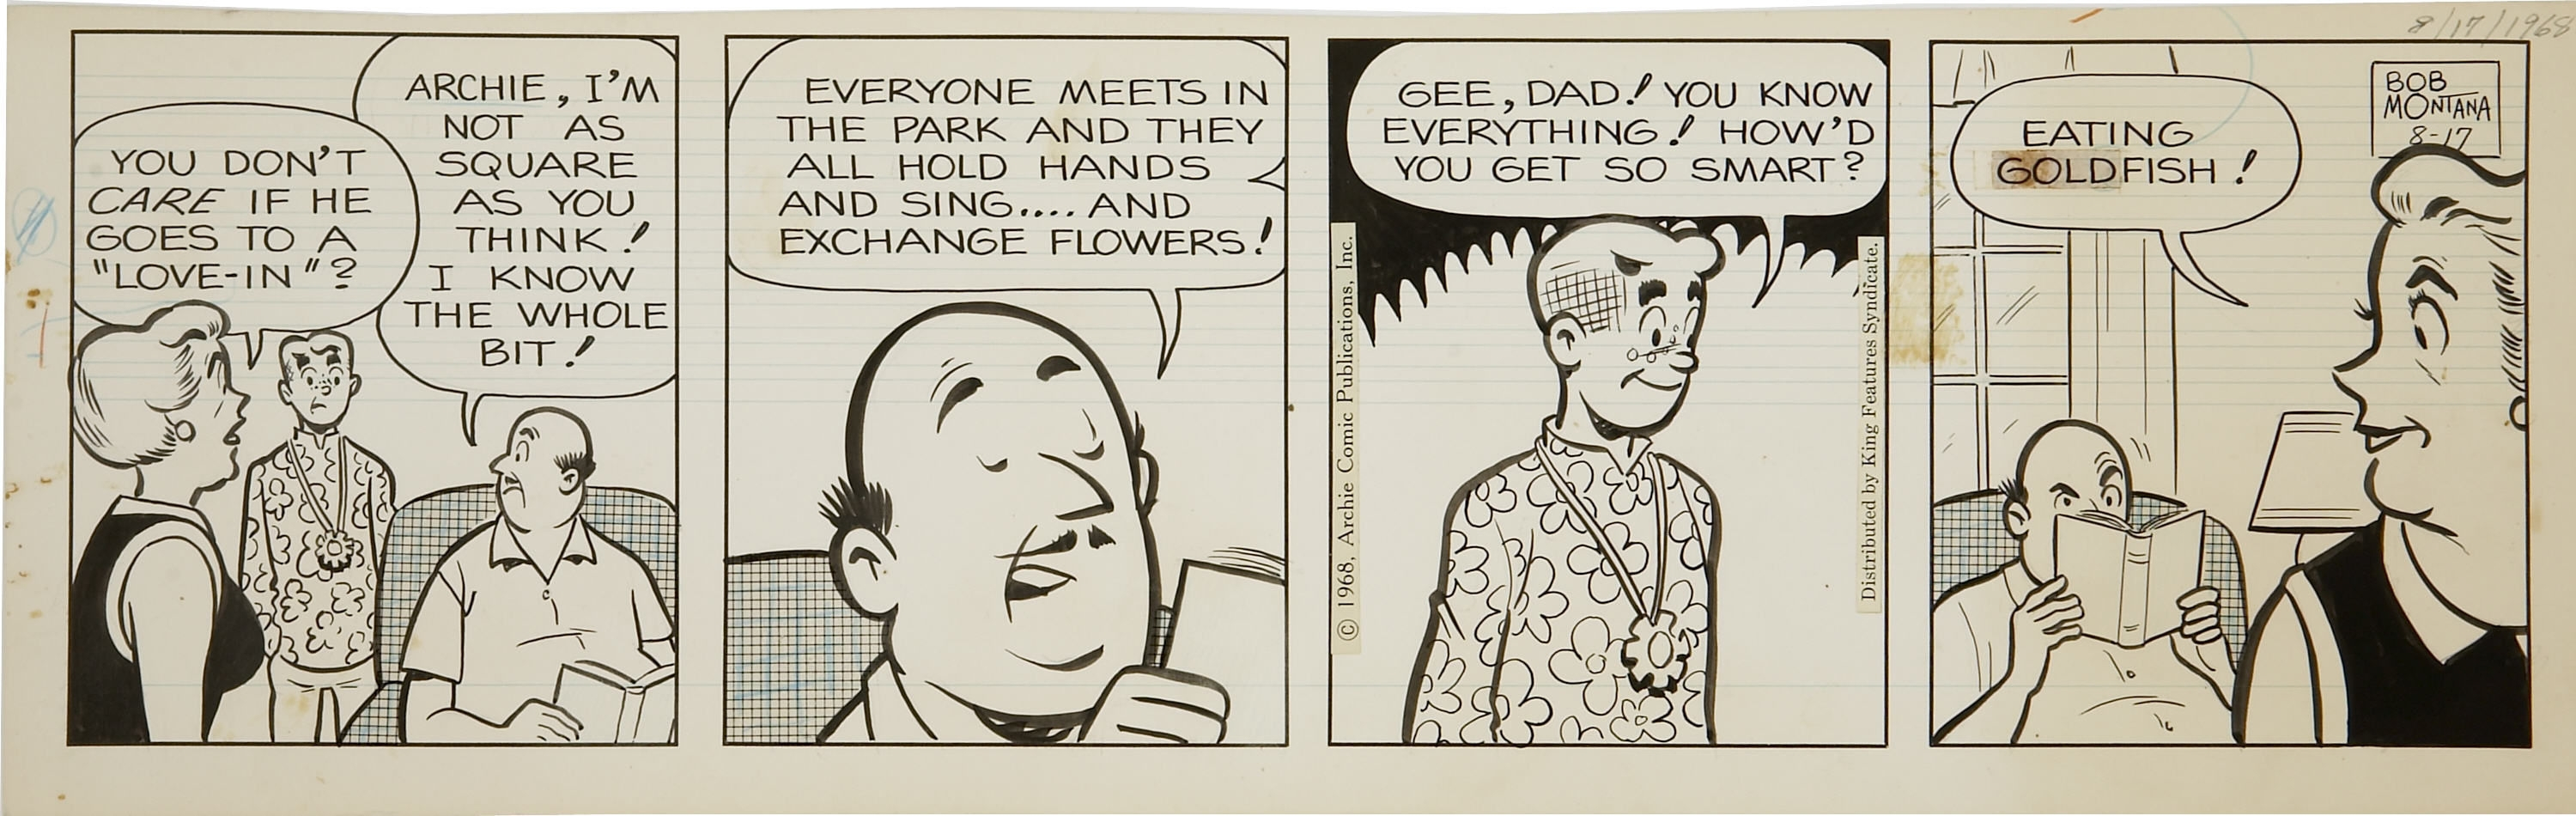 Archie comc strip new porno